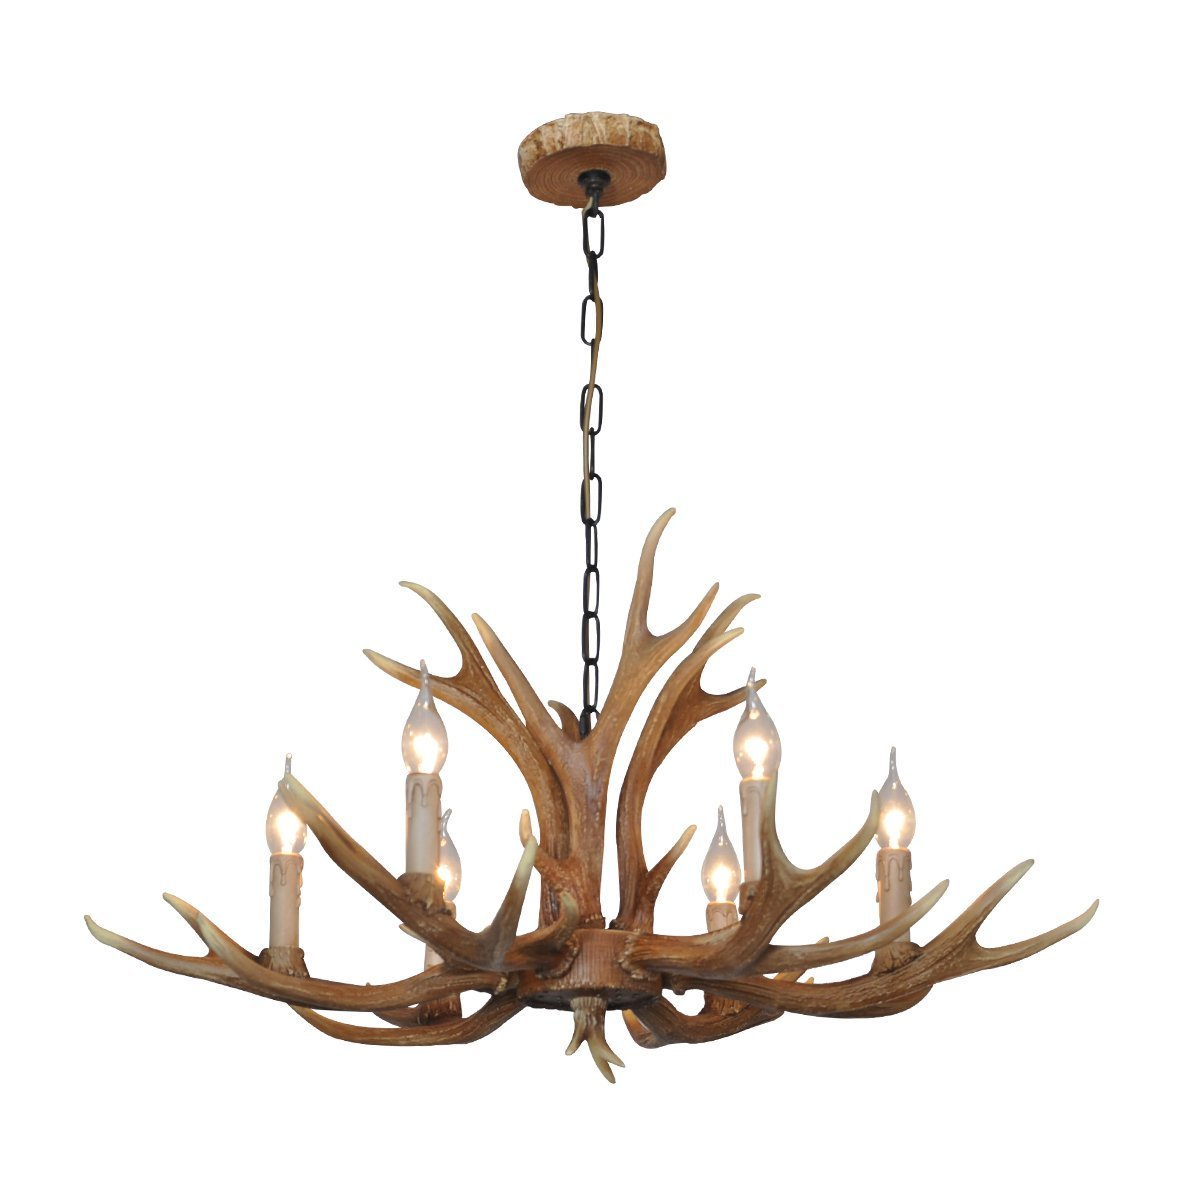 Deer Horn E12 BUlb 6-Light Iron Resin Industrial Retro Droplight Chandelier Coffee